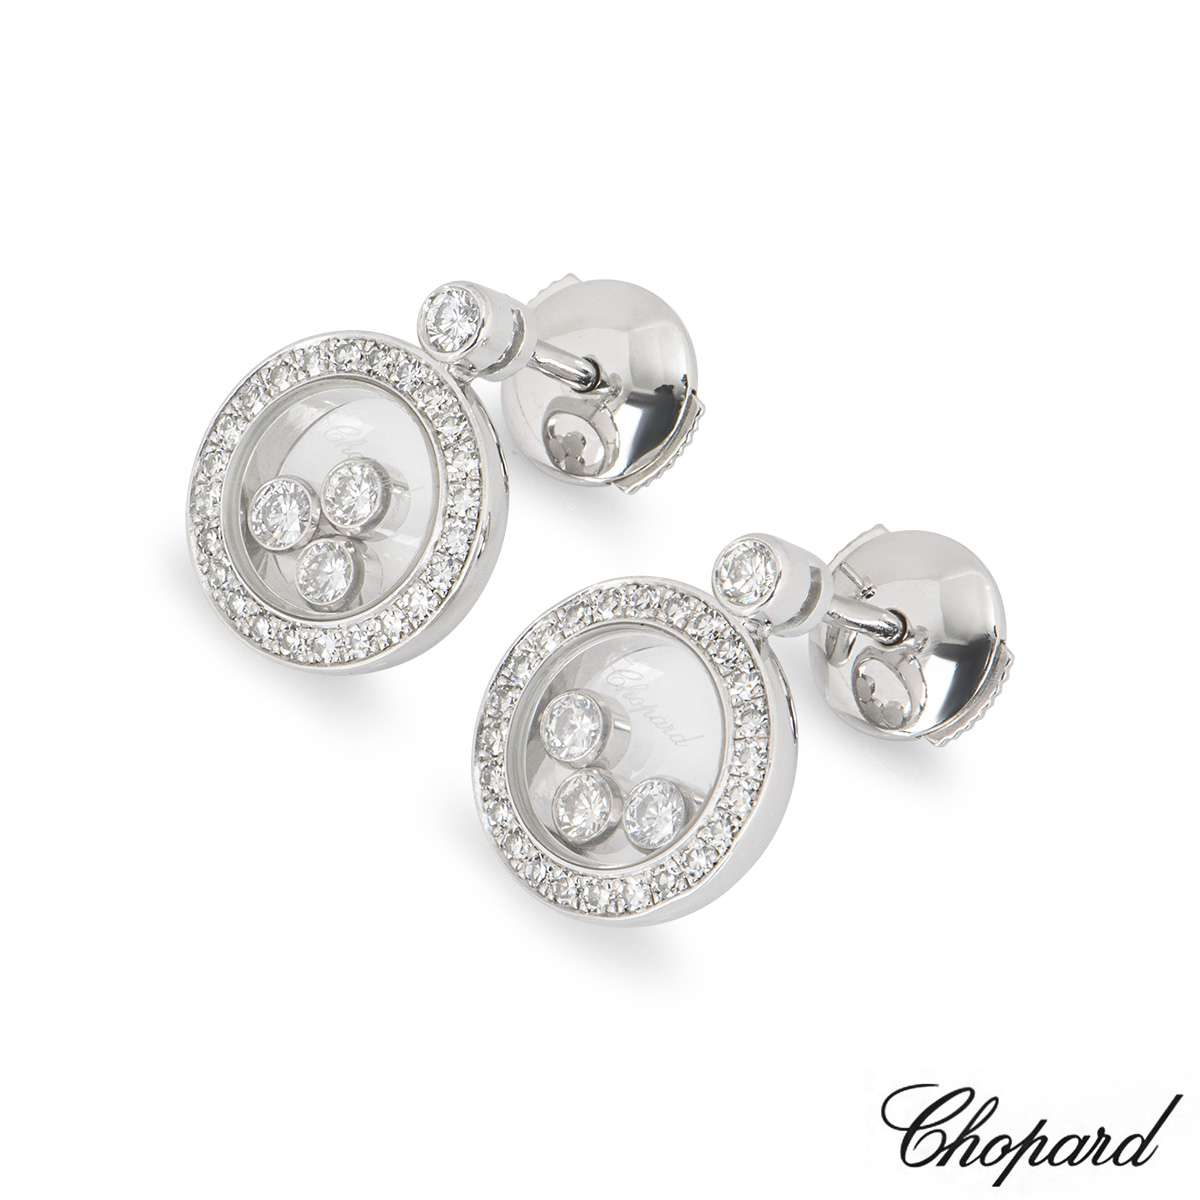 Chopard White Gold Happy Icons Diamond Earrings 83A018-1201